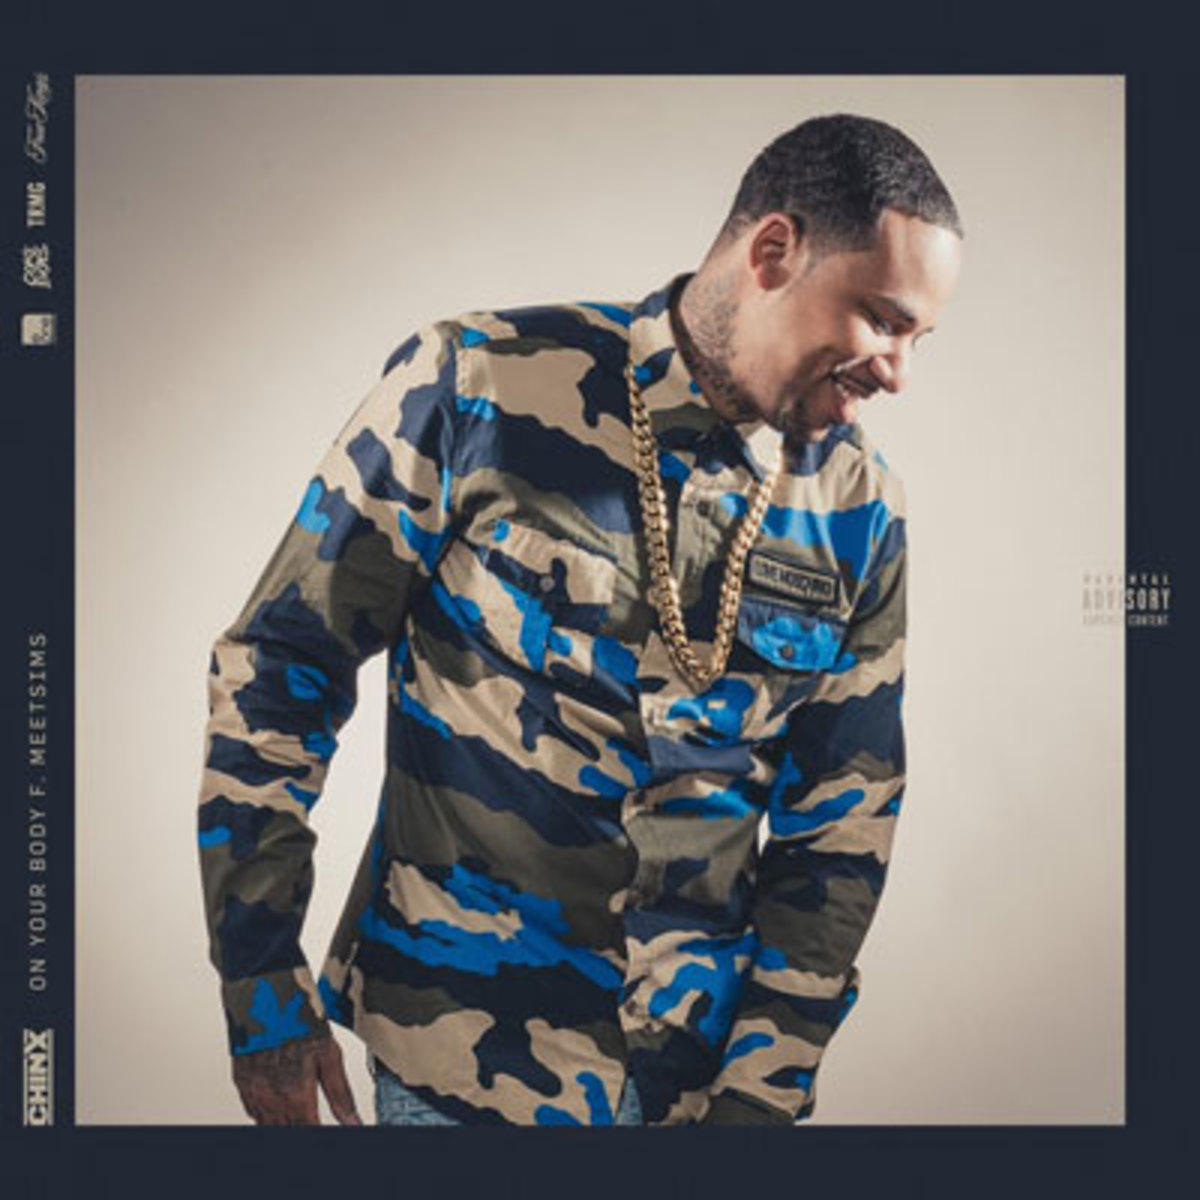 chinx-on-your-body.jpg